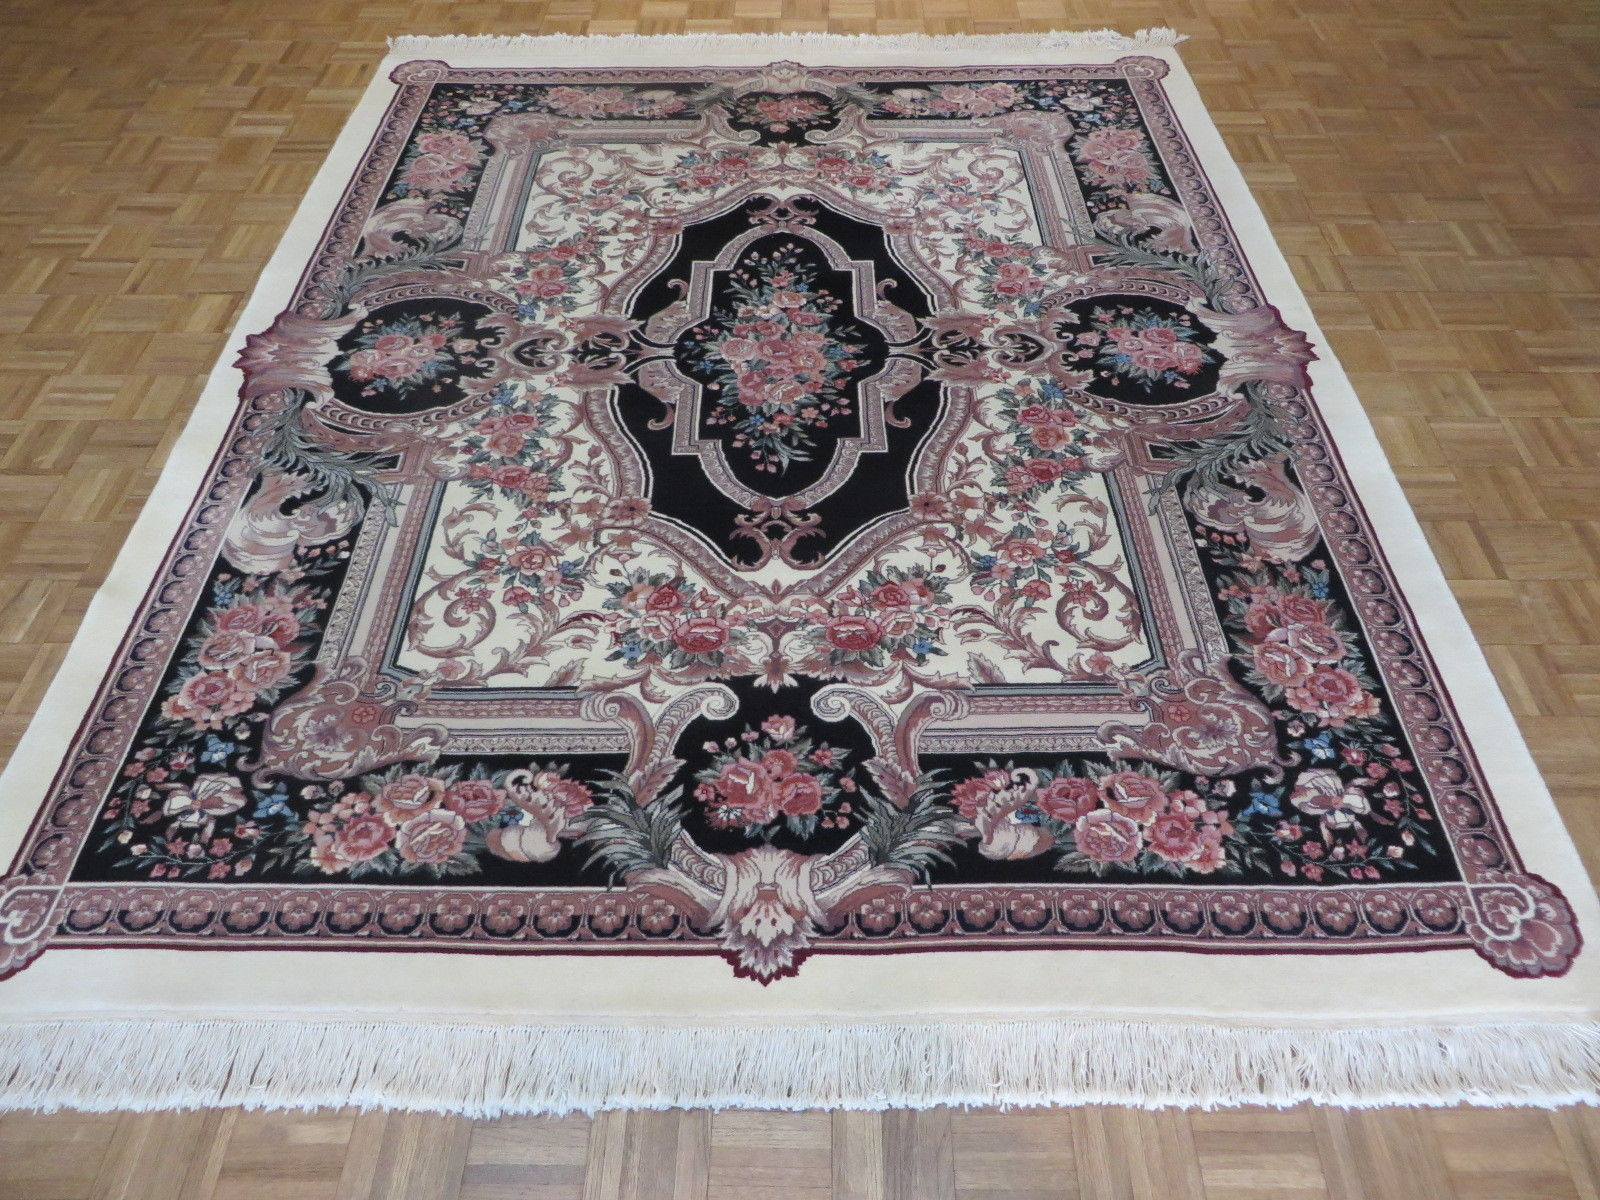 8 X 10 Hand Knotted Ivory Black Aubusson Oriental Area Rug 12980453 Goodluck Rugs